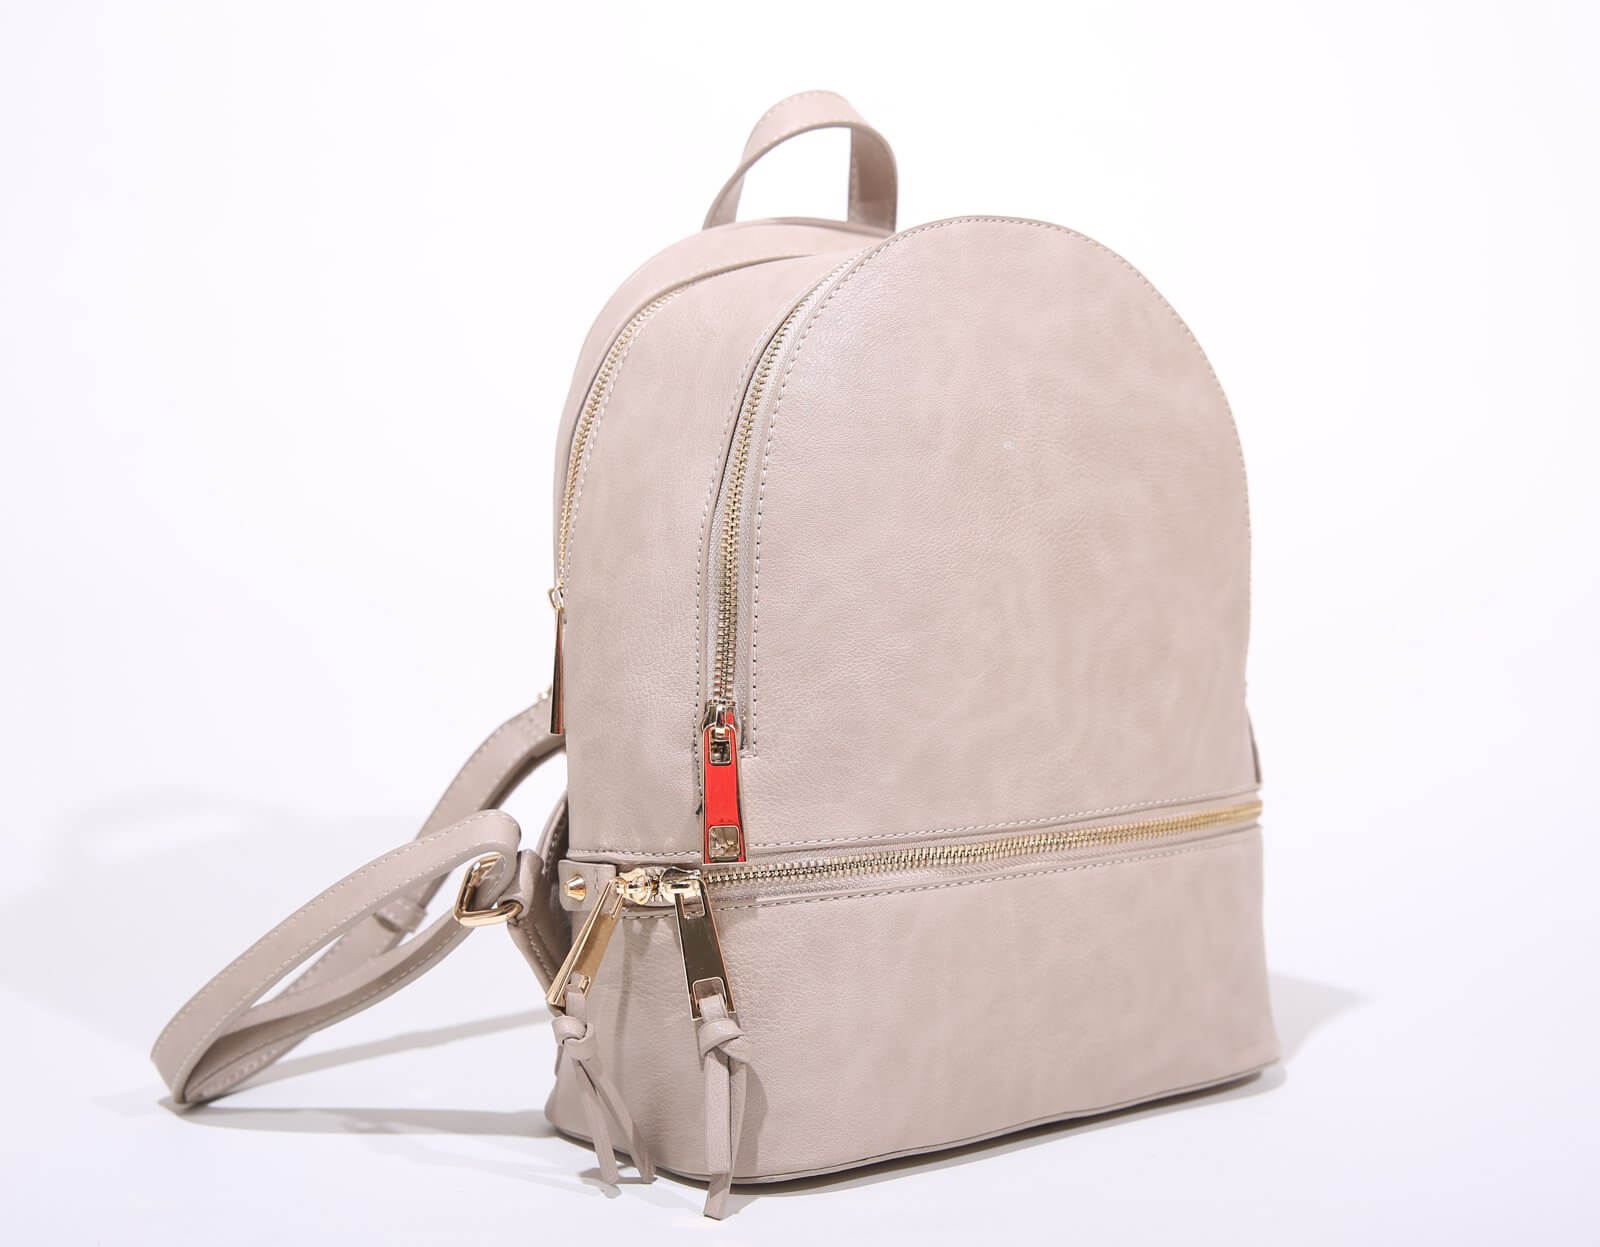 Image of Beige pleather backpack